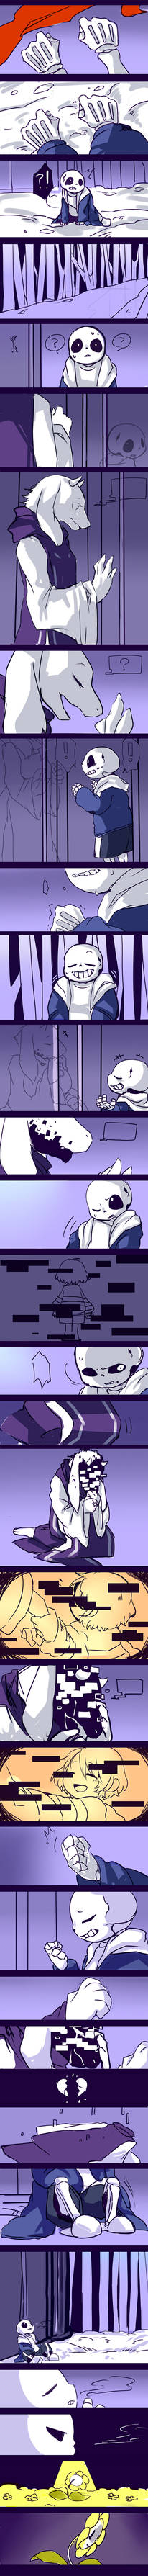 undertale-first half-02